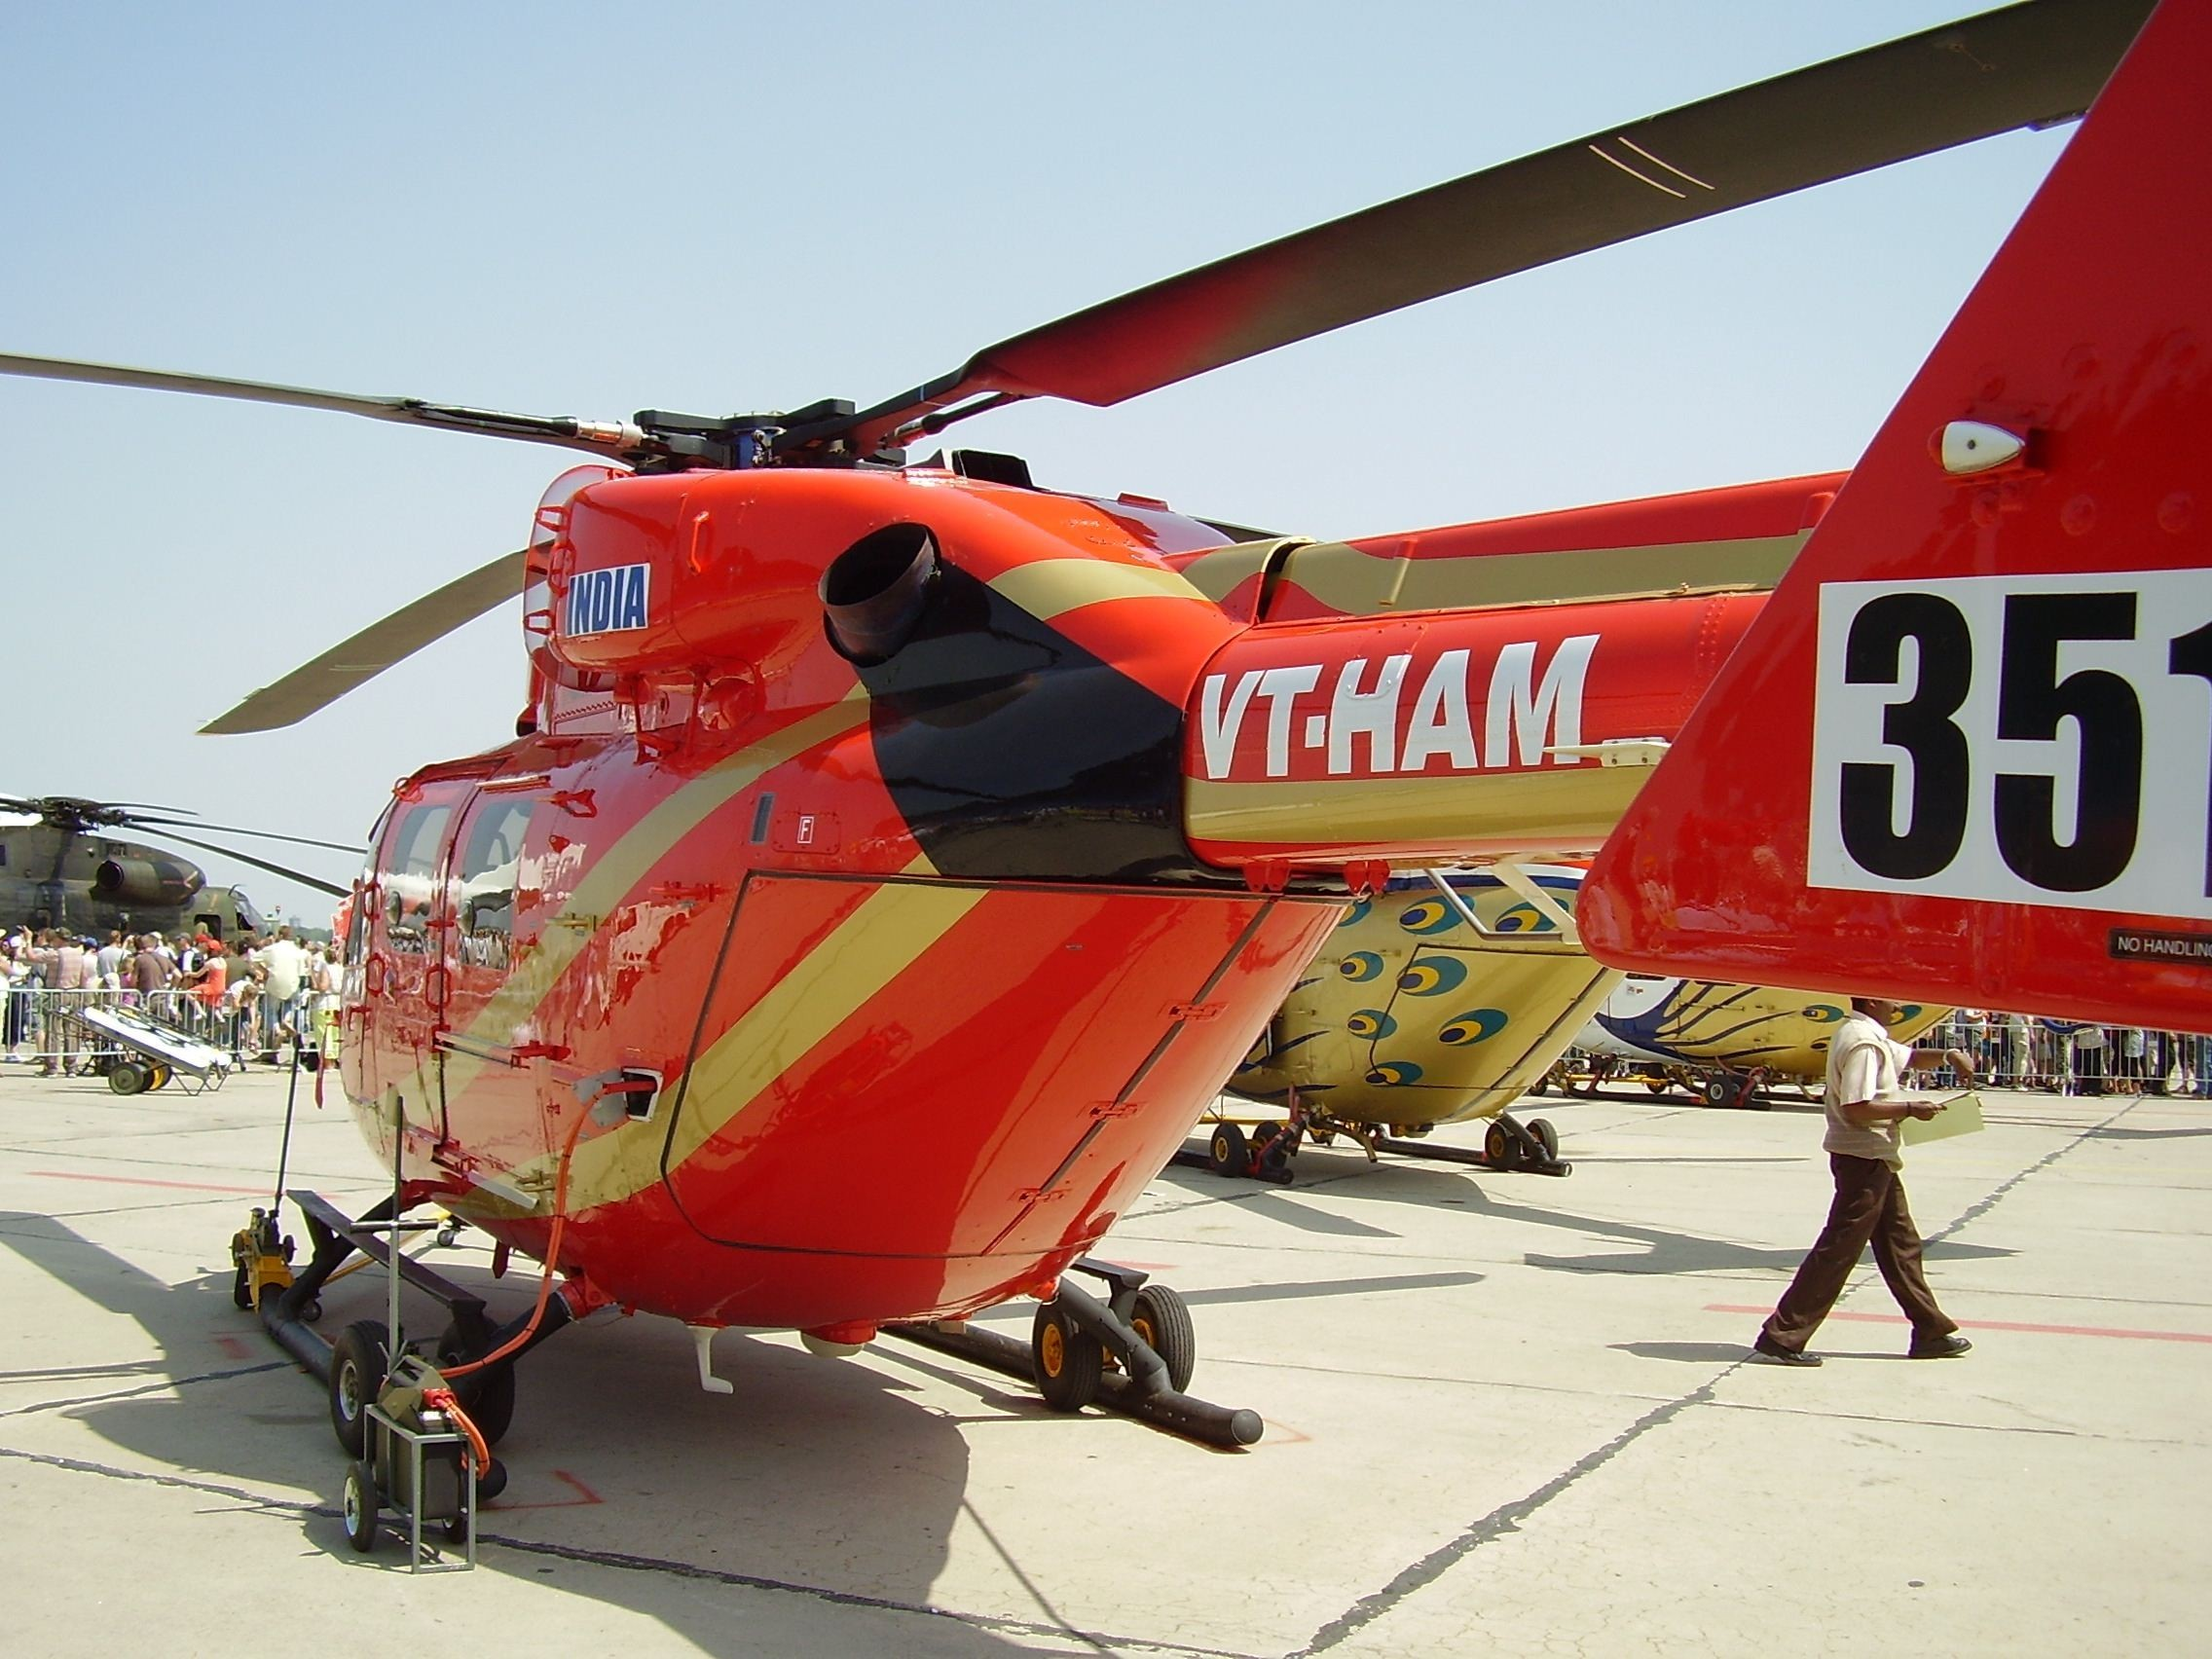 Aircraft Helicopters hal India HD Wallpaper